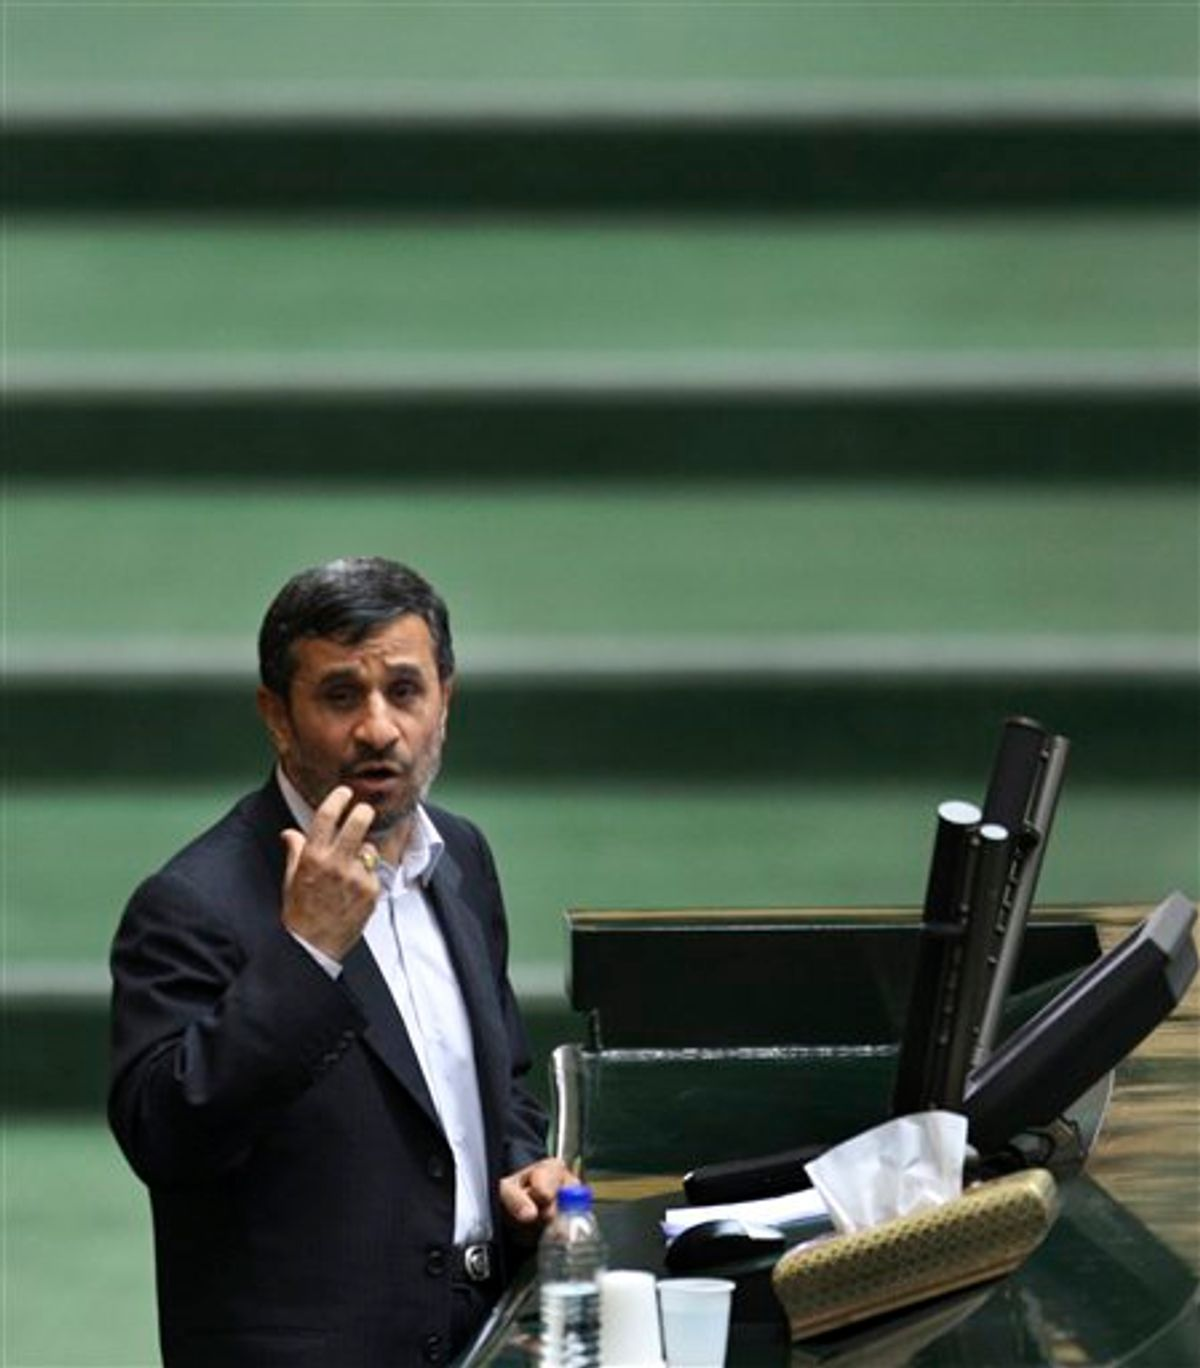 Iranian President Mahmoud Ahmadinejad delivers his speech during the debate for a vote of confidence in Ahmadinejad's choice for new Foreign Minister, who is Head of Iran's Atomic Energy Organization, Ali Akbar Salehi,  during an open session of parliament, in Tehran, Iran, Sunday, Jan. 30, 2011.  Iran's lawmakers approved Ahmadinejad's choice of Salehi for foreign minister, indicating the importance that the country's nuclear program has for its international diplomacy. (AP Photo/Vahid Salemi) (AP)